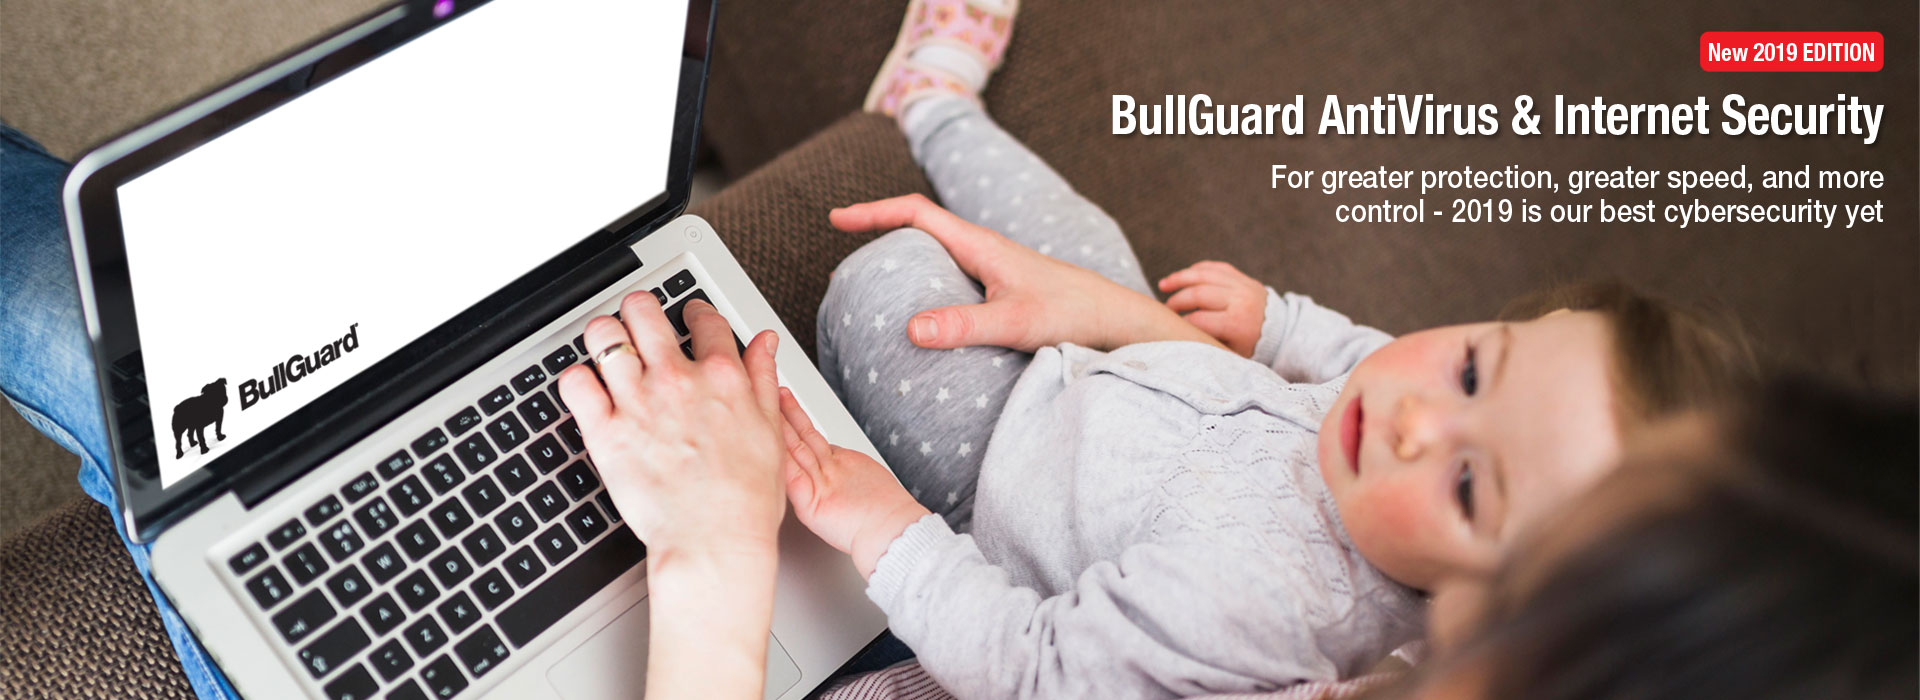 T-Shop BullGuard Header Image